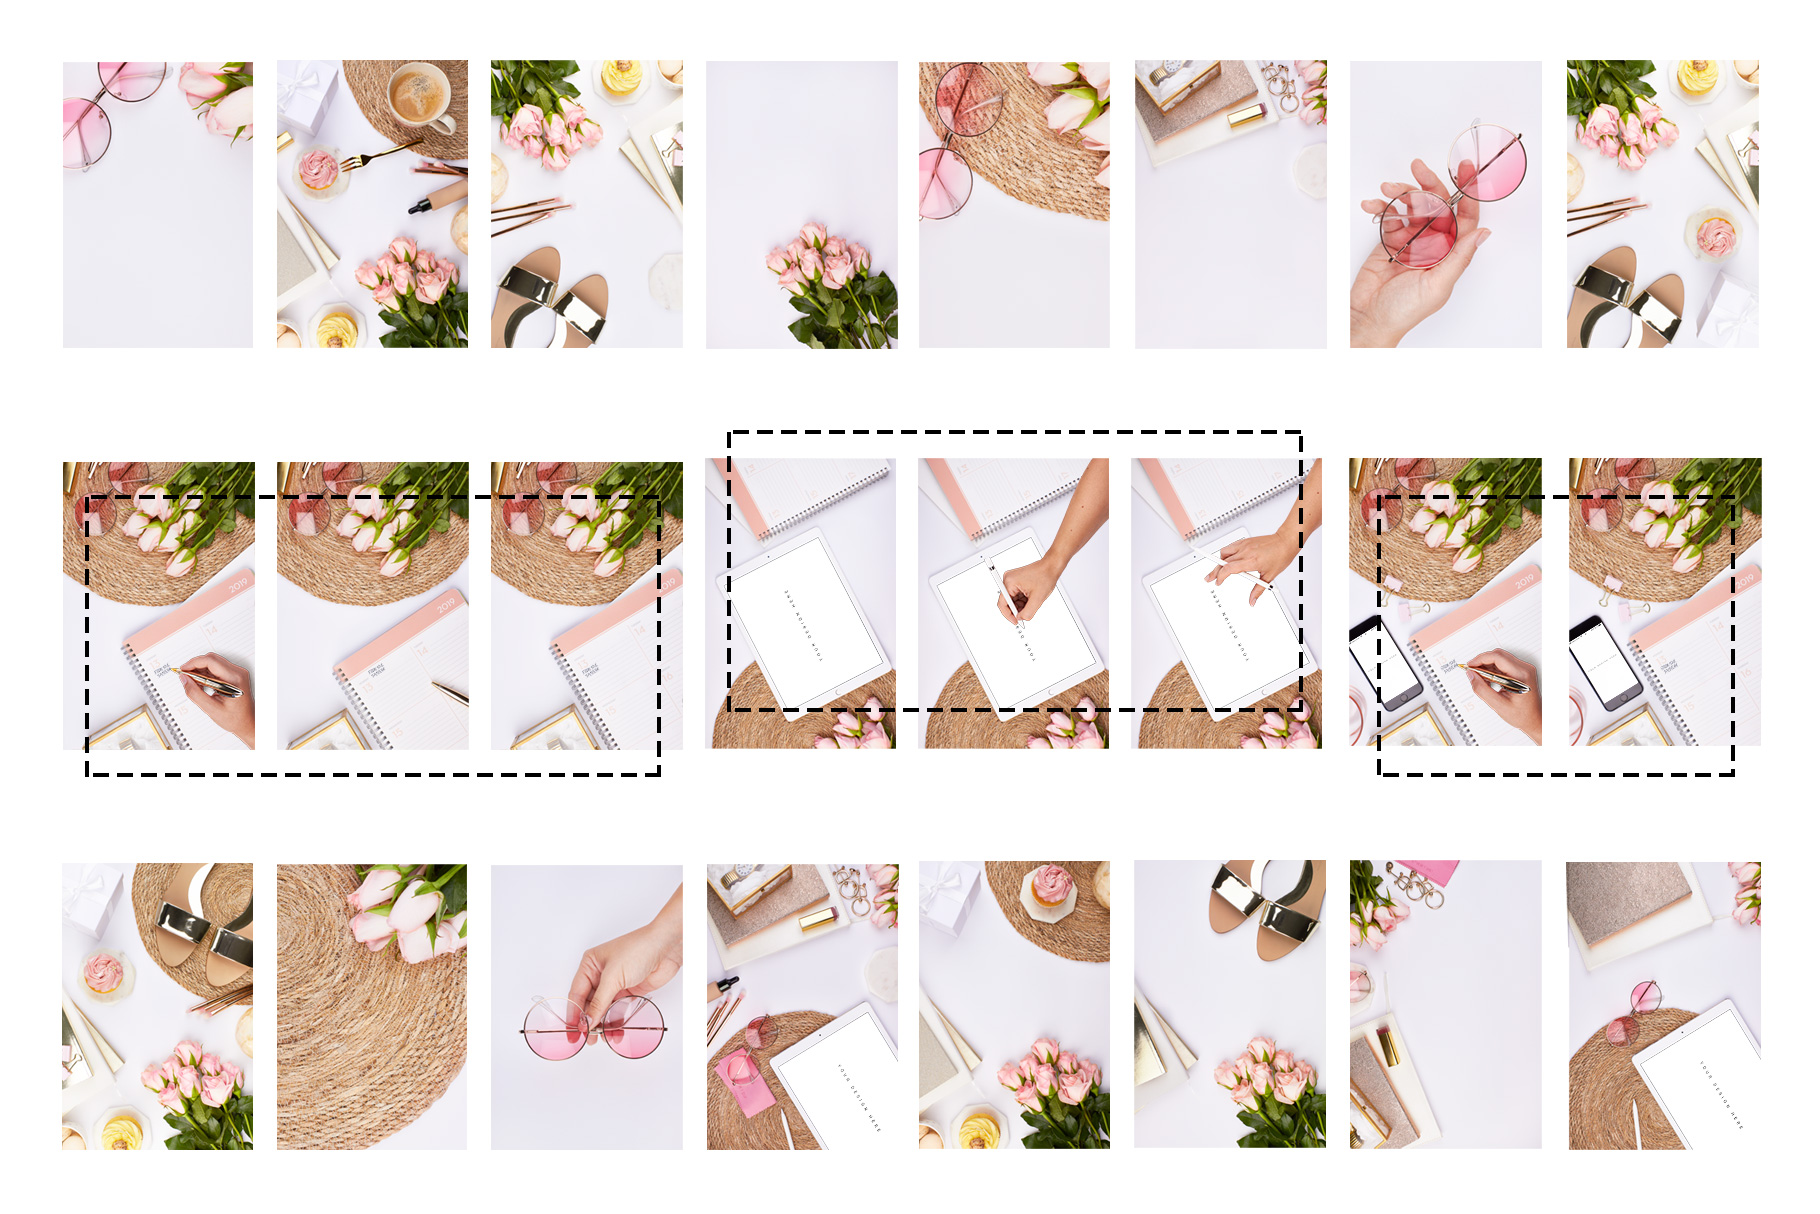 08-pink-blogger-summer-stock-images-bundle-sunglas-mockup-ipad-iphone-hand-planner